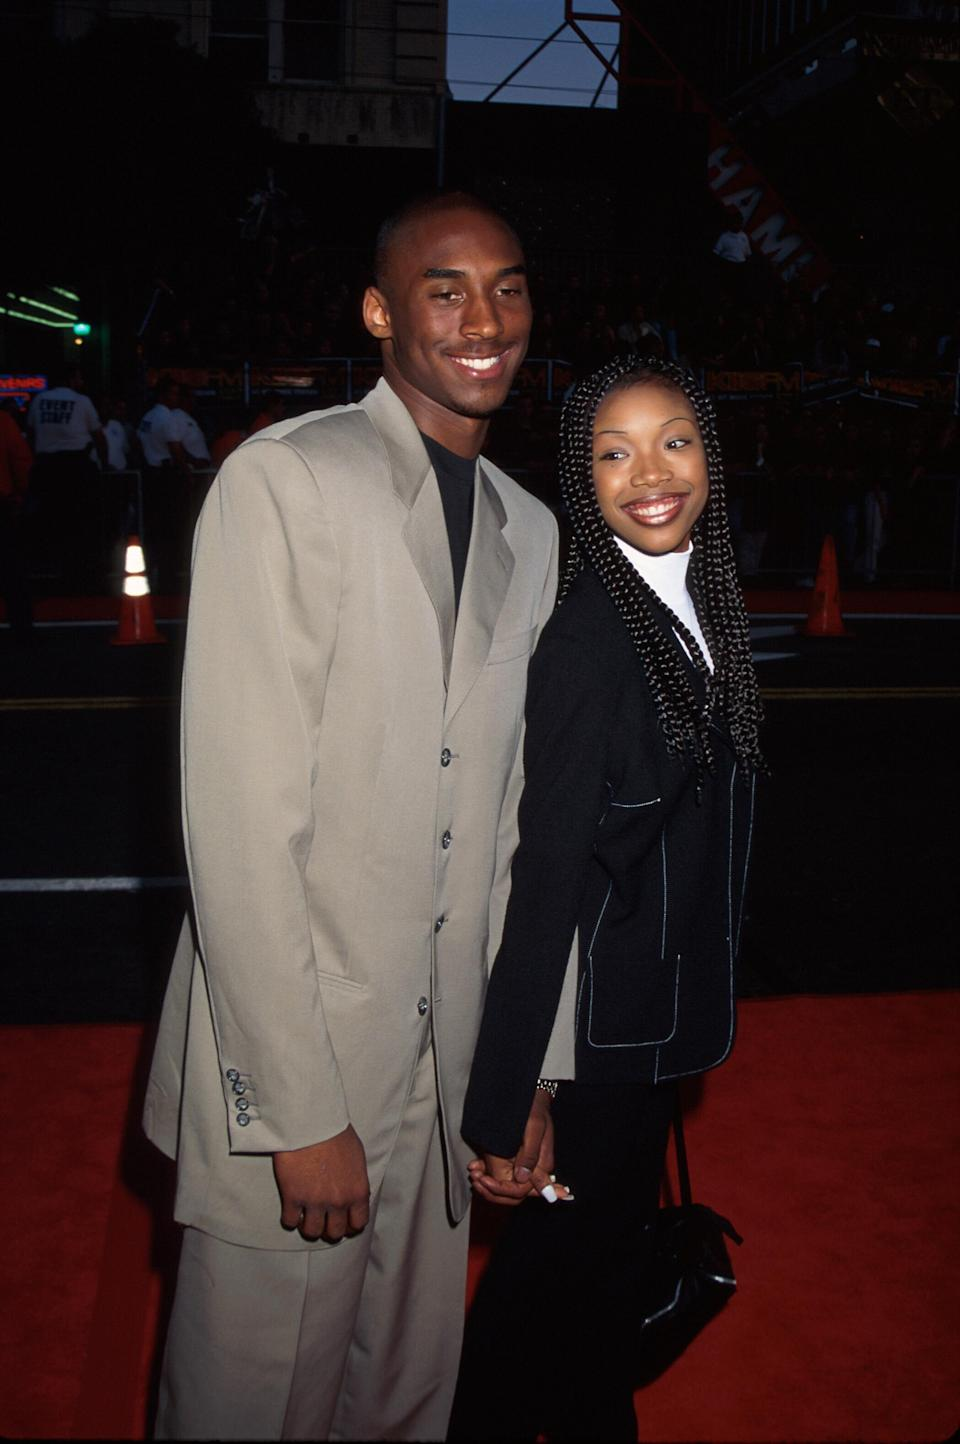 Singer/actress Brandy w. professional basketball player Kobe Bryant. (Photo by Mirek Towski/DMI/The LIFE Picture Collection via Getty Images)